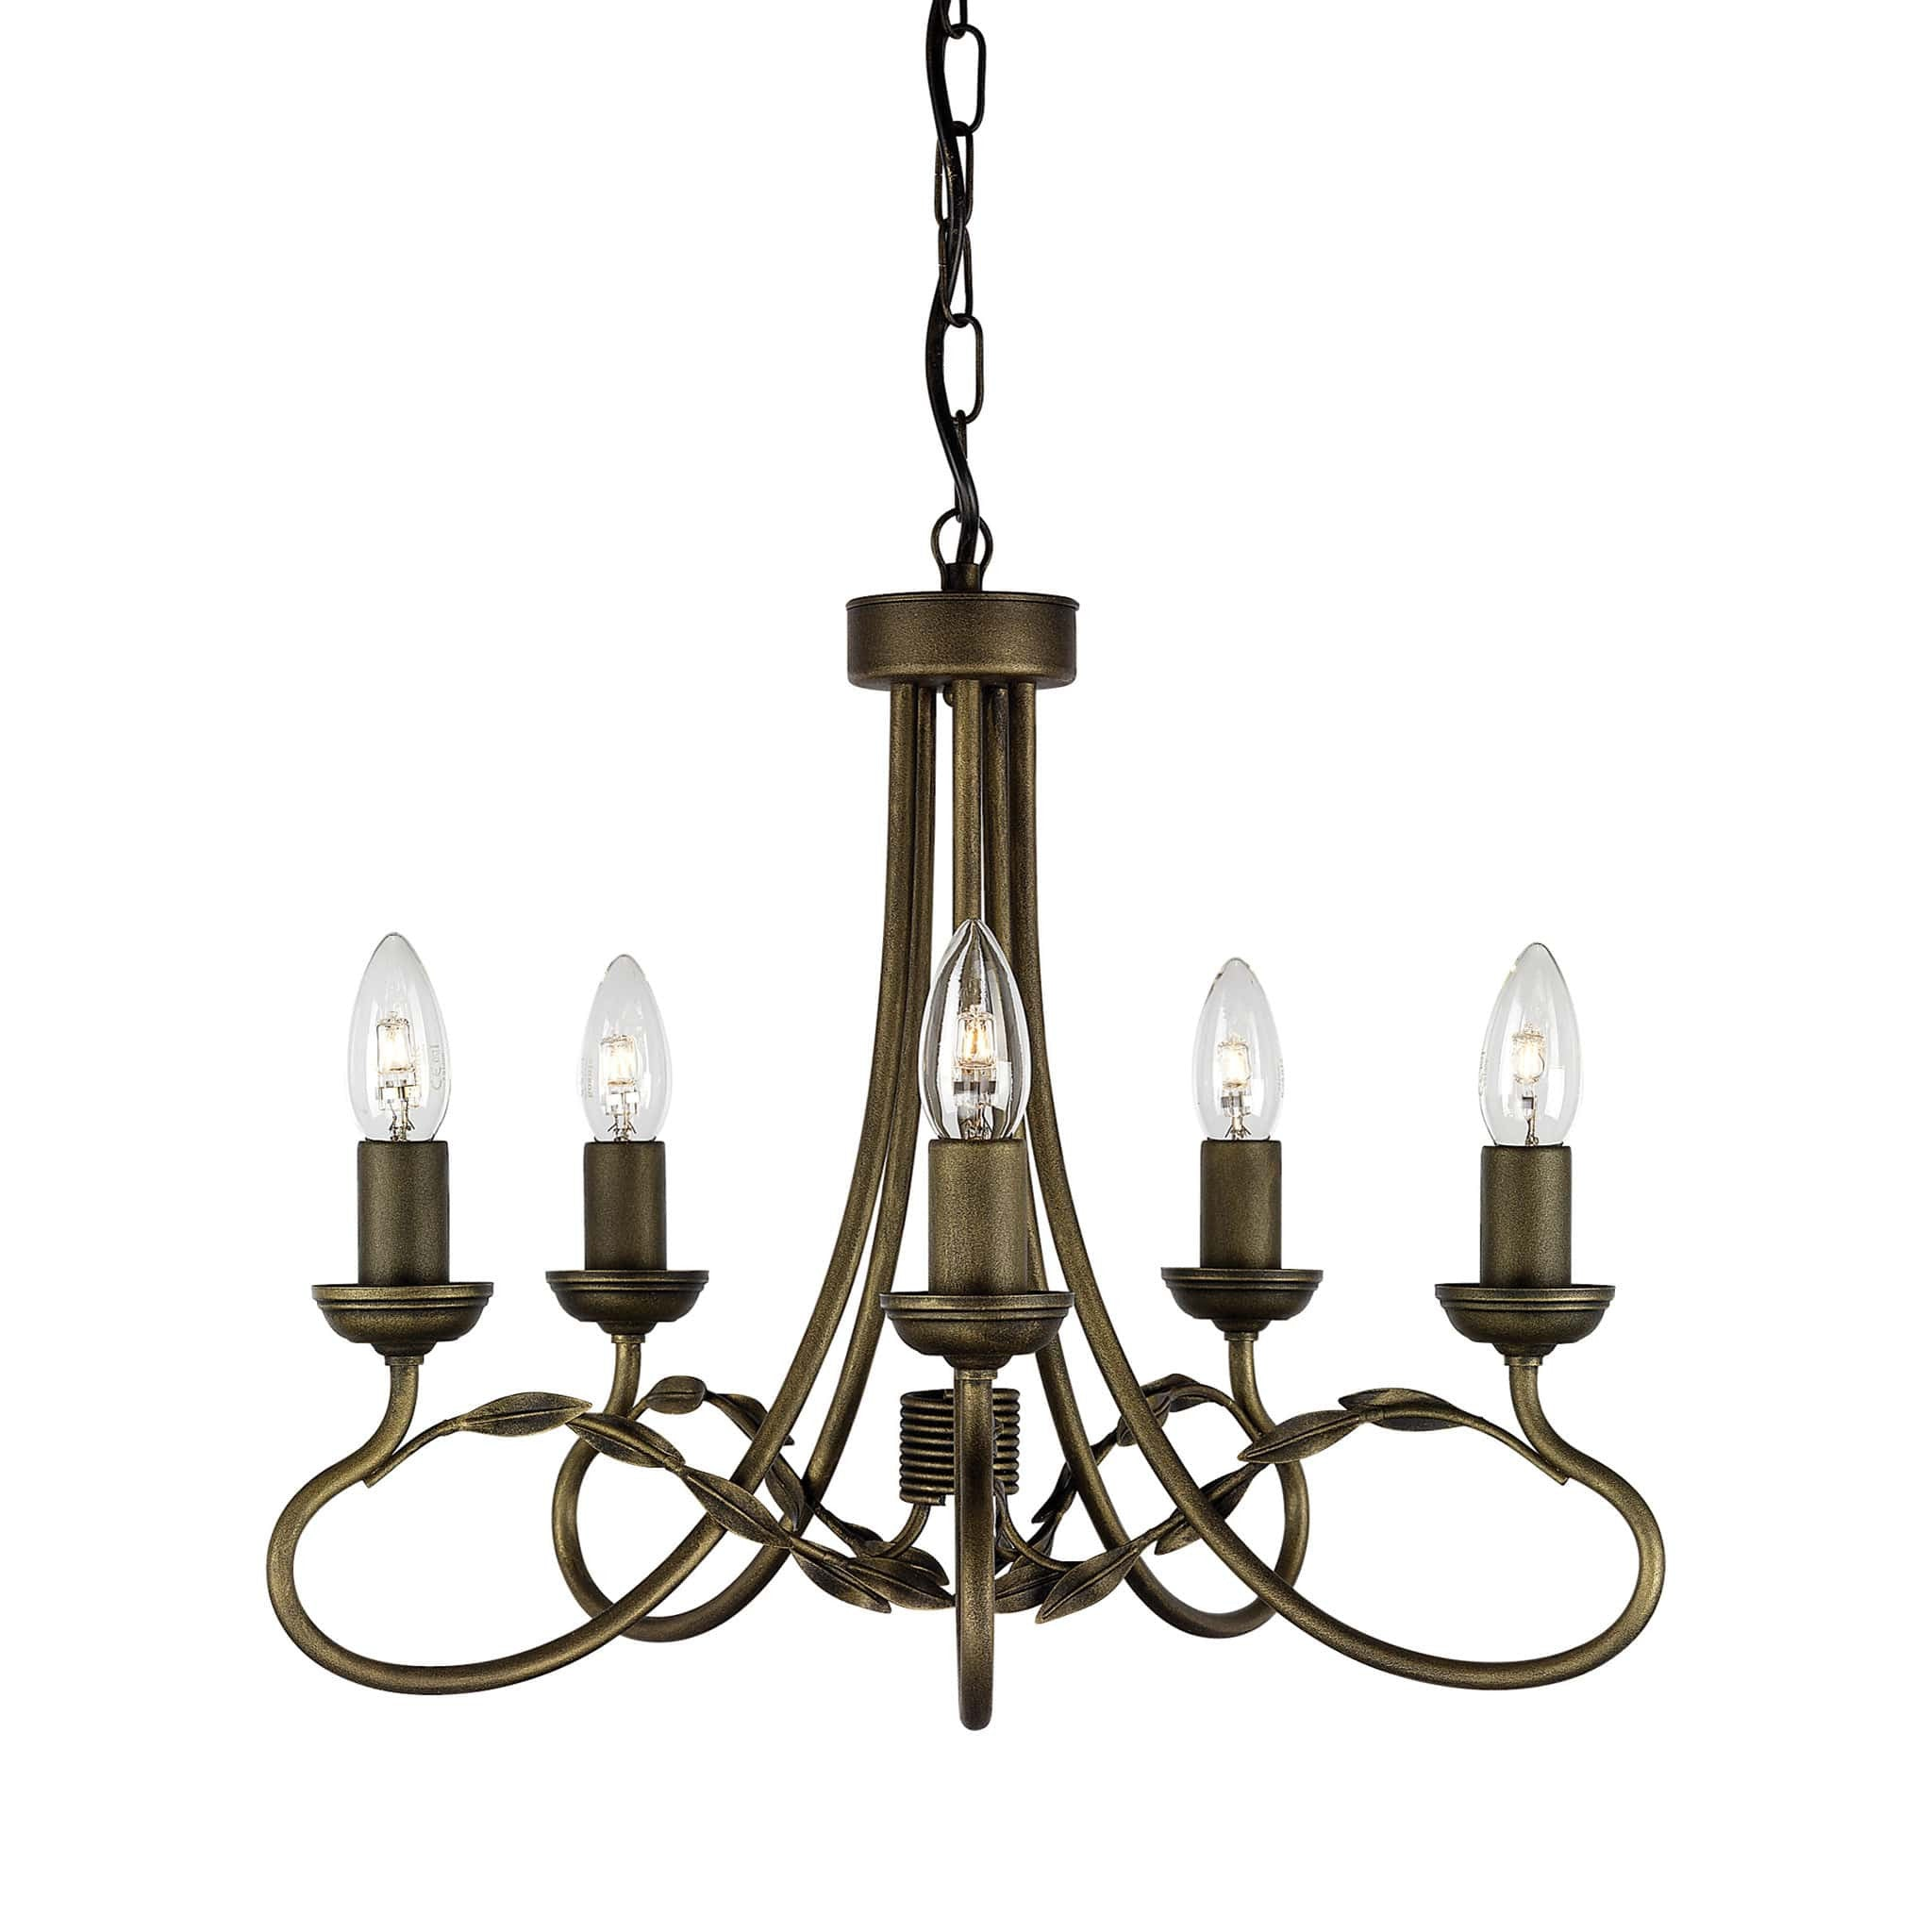 Elstead olivia 5 light black gold candle chandelier chandelier shack elstead olivia 6 light black gold candle chandelier ov5 blkgold mozeypictures Image collections